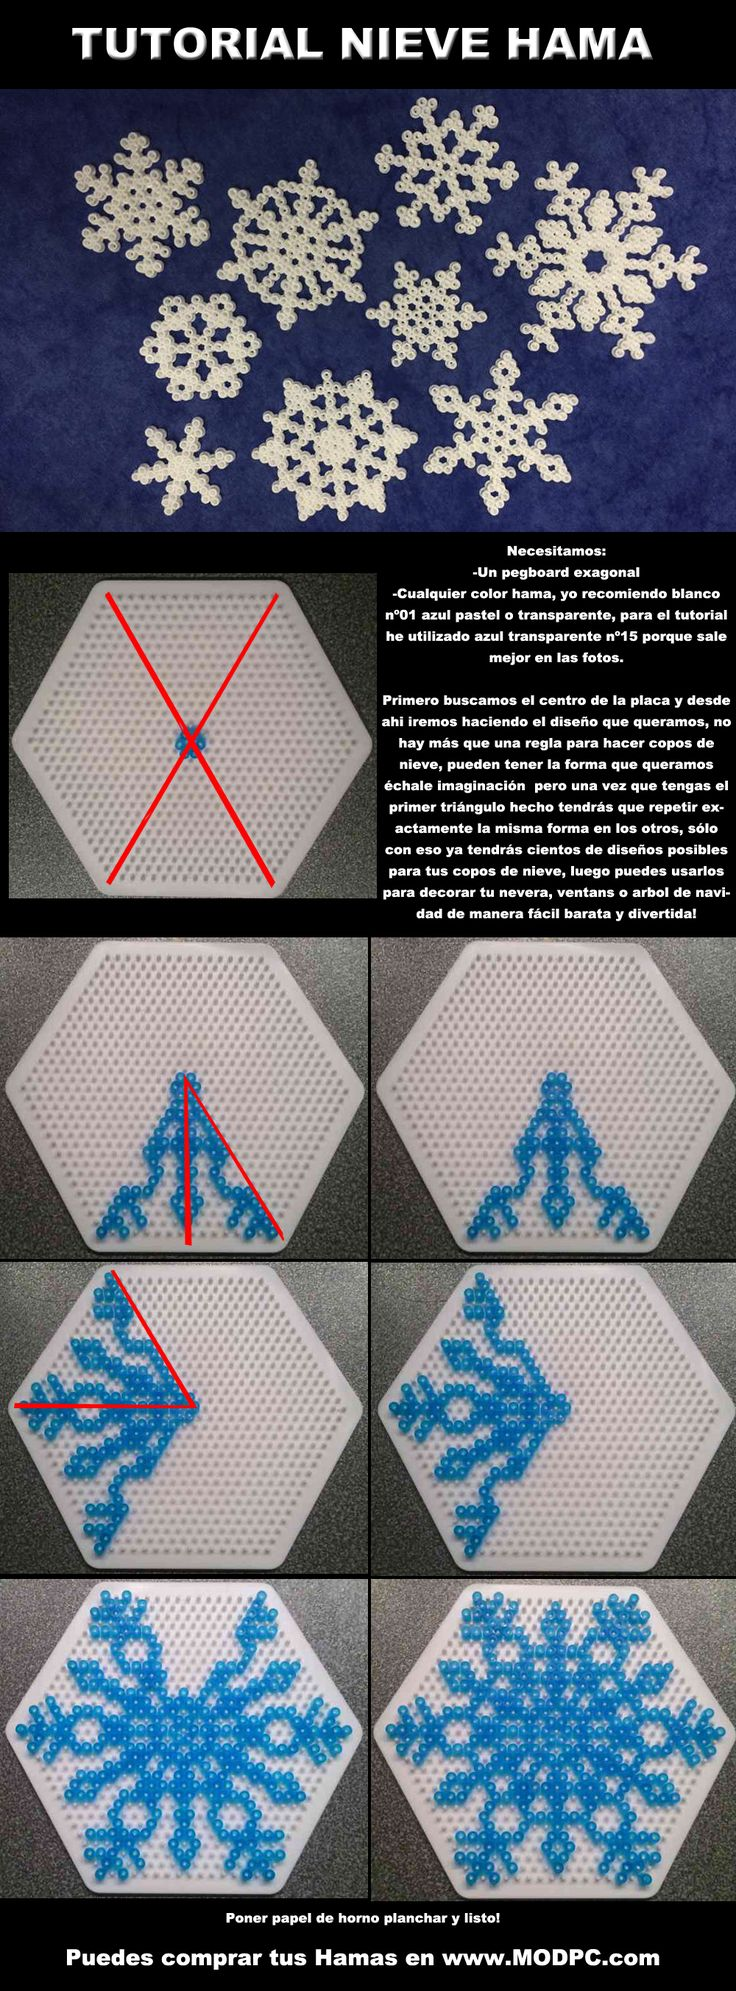 Tutorial: How to perler bead snowflakes by Hamamia on deviantART